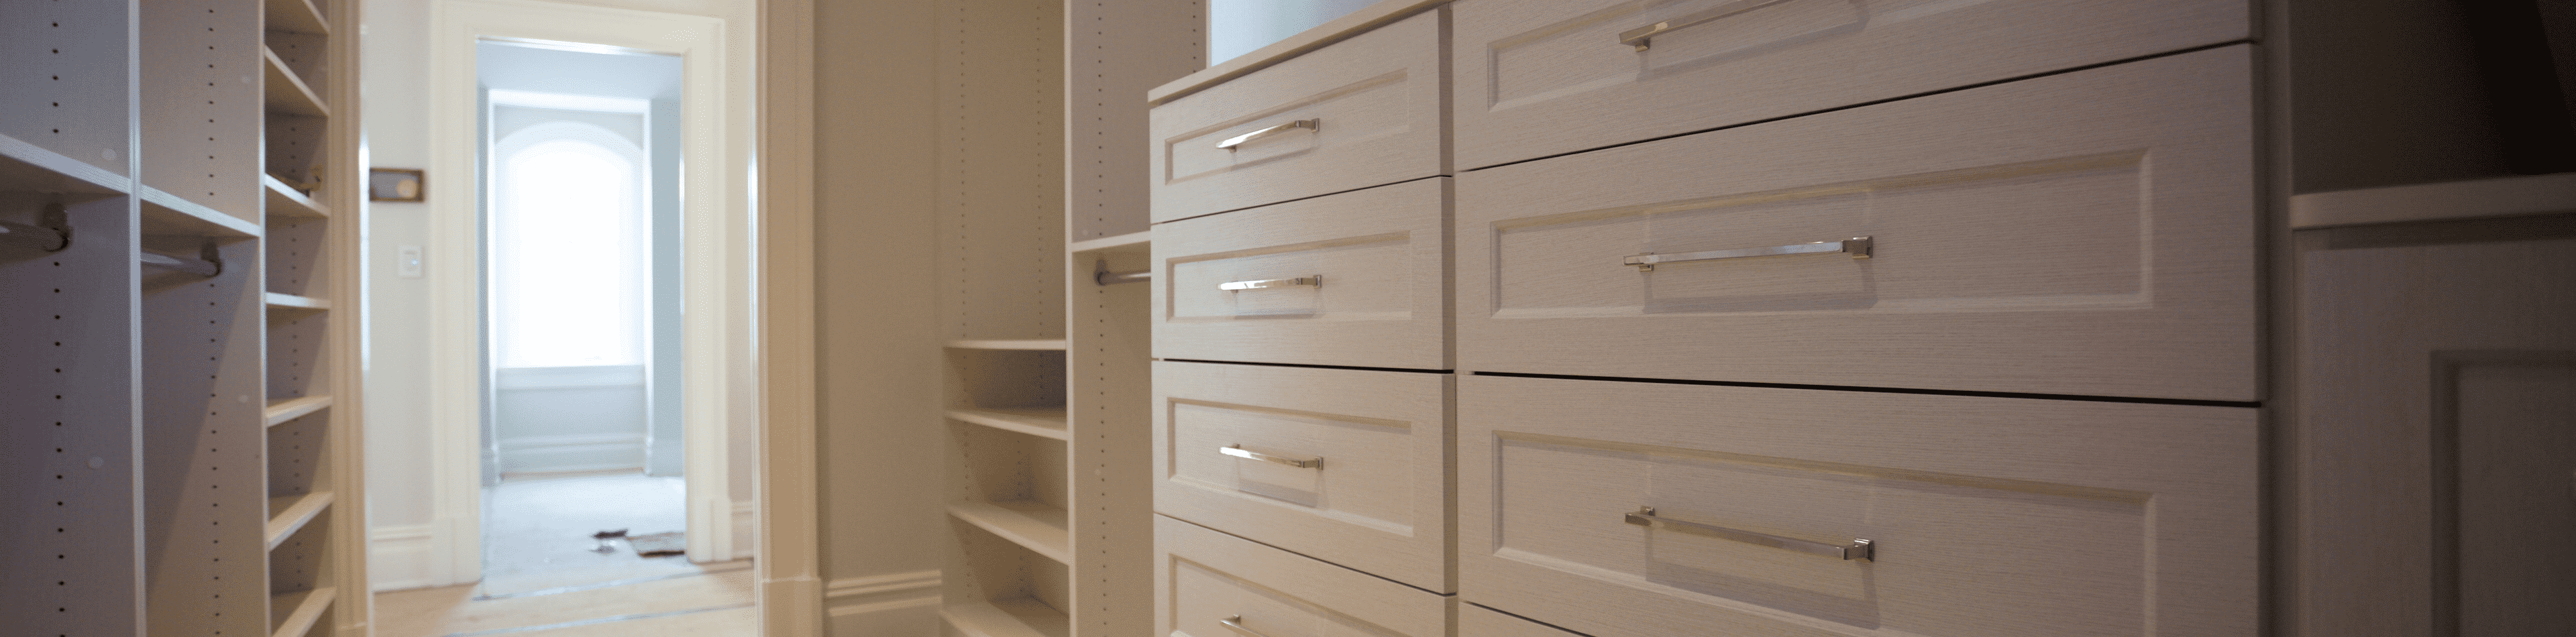 Innovative Closet Designs (Wyckoff, New Jersey) wide range of products, designs, and finishes combined with our custom capabilities ensures that your storage solution completes your dream home and fits your style.